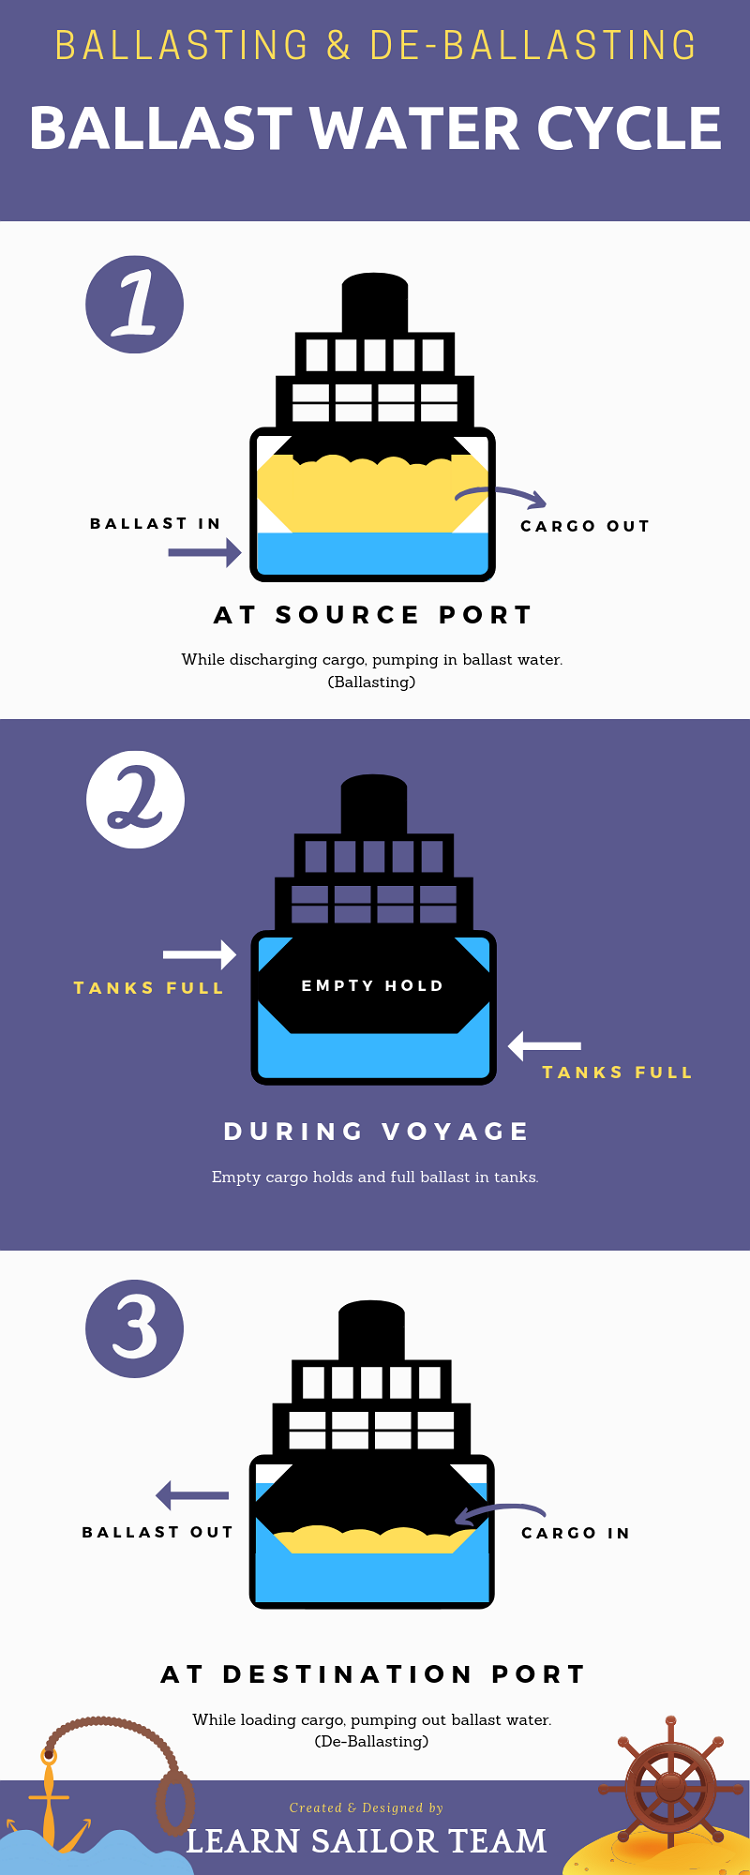 what-is-ballasting-and-de-ballasting-infogrphic-learnsailor